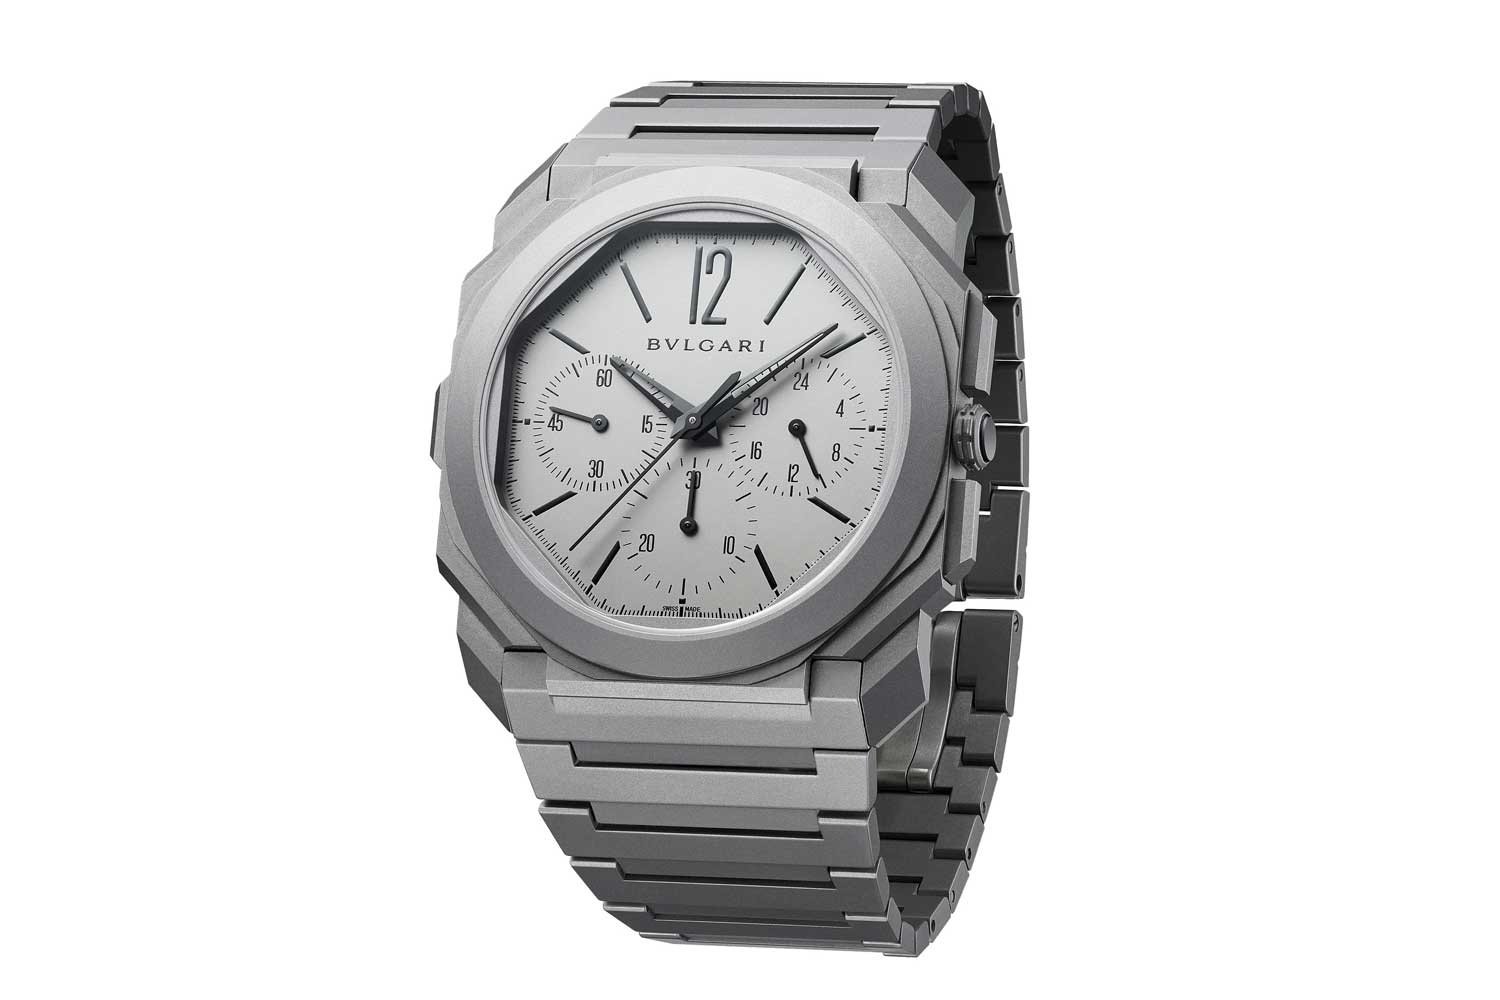 Bulgari Octo Finissimo Chronograph GMT Automatic